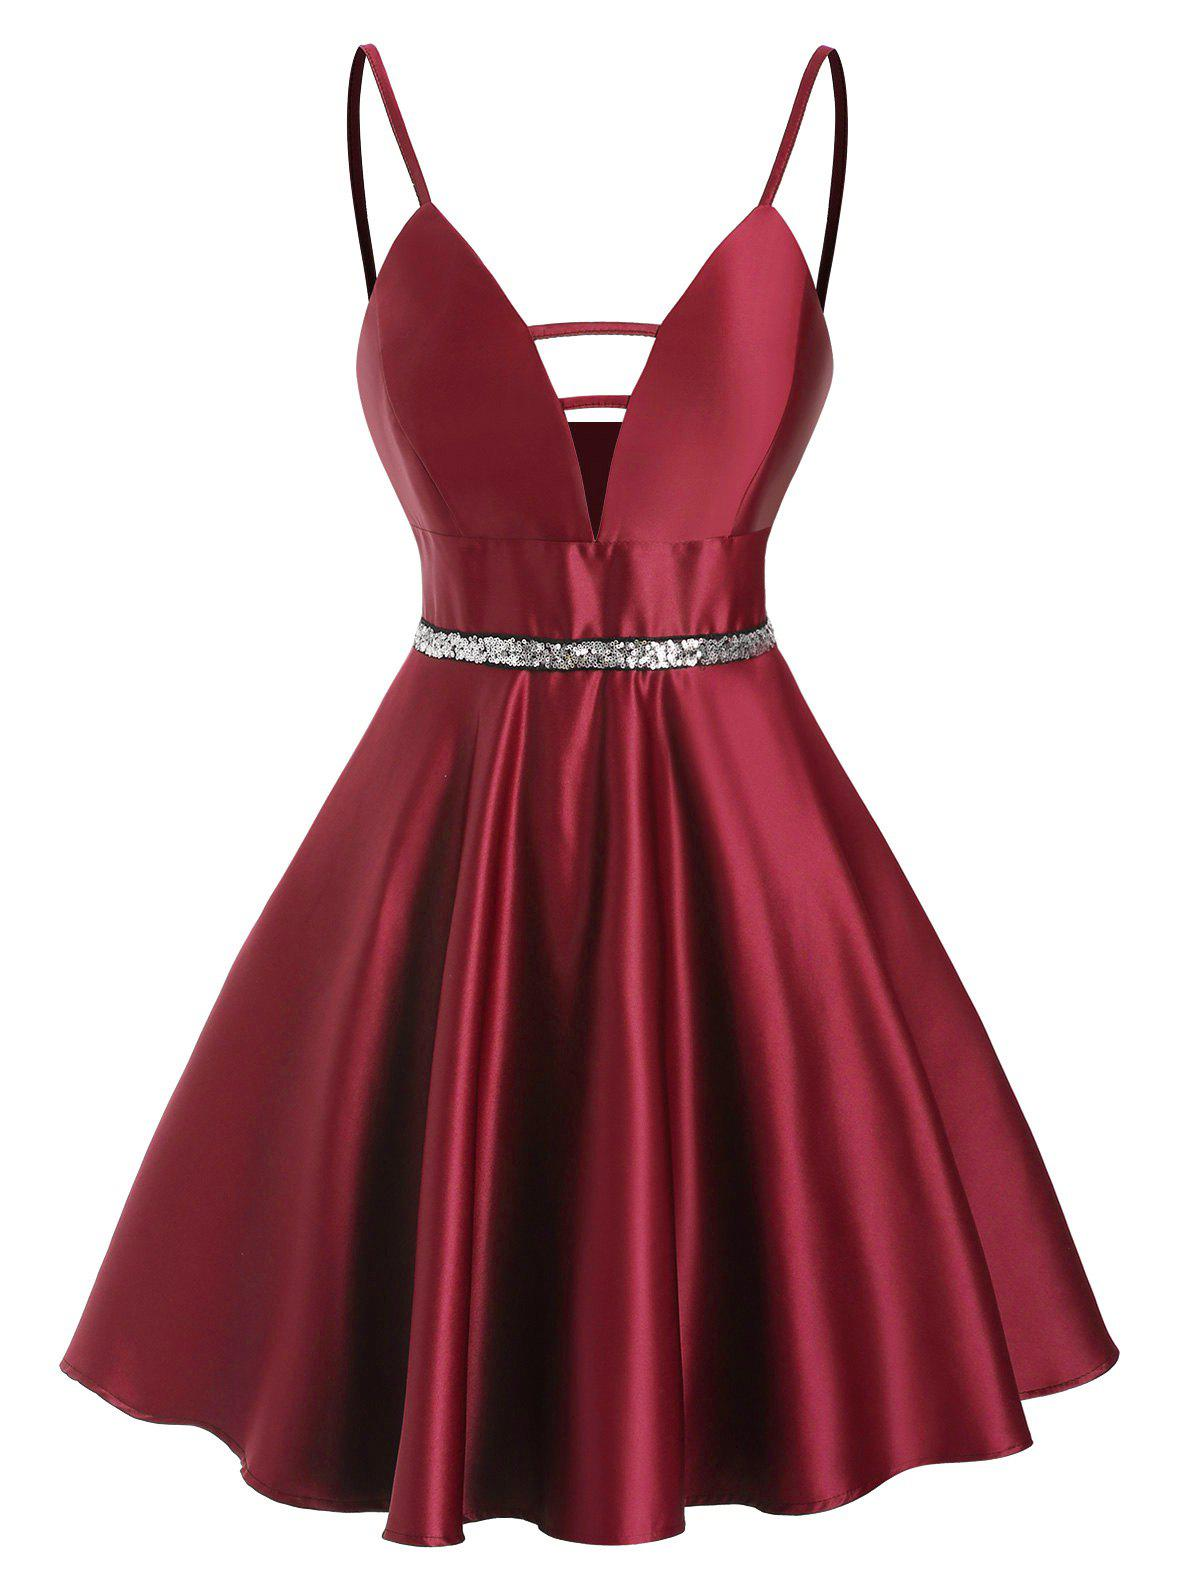 Sequined Ladder Cut Plunge Party Dress - DEEP RED XL